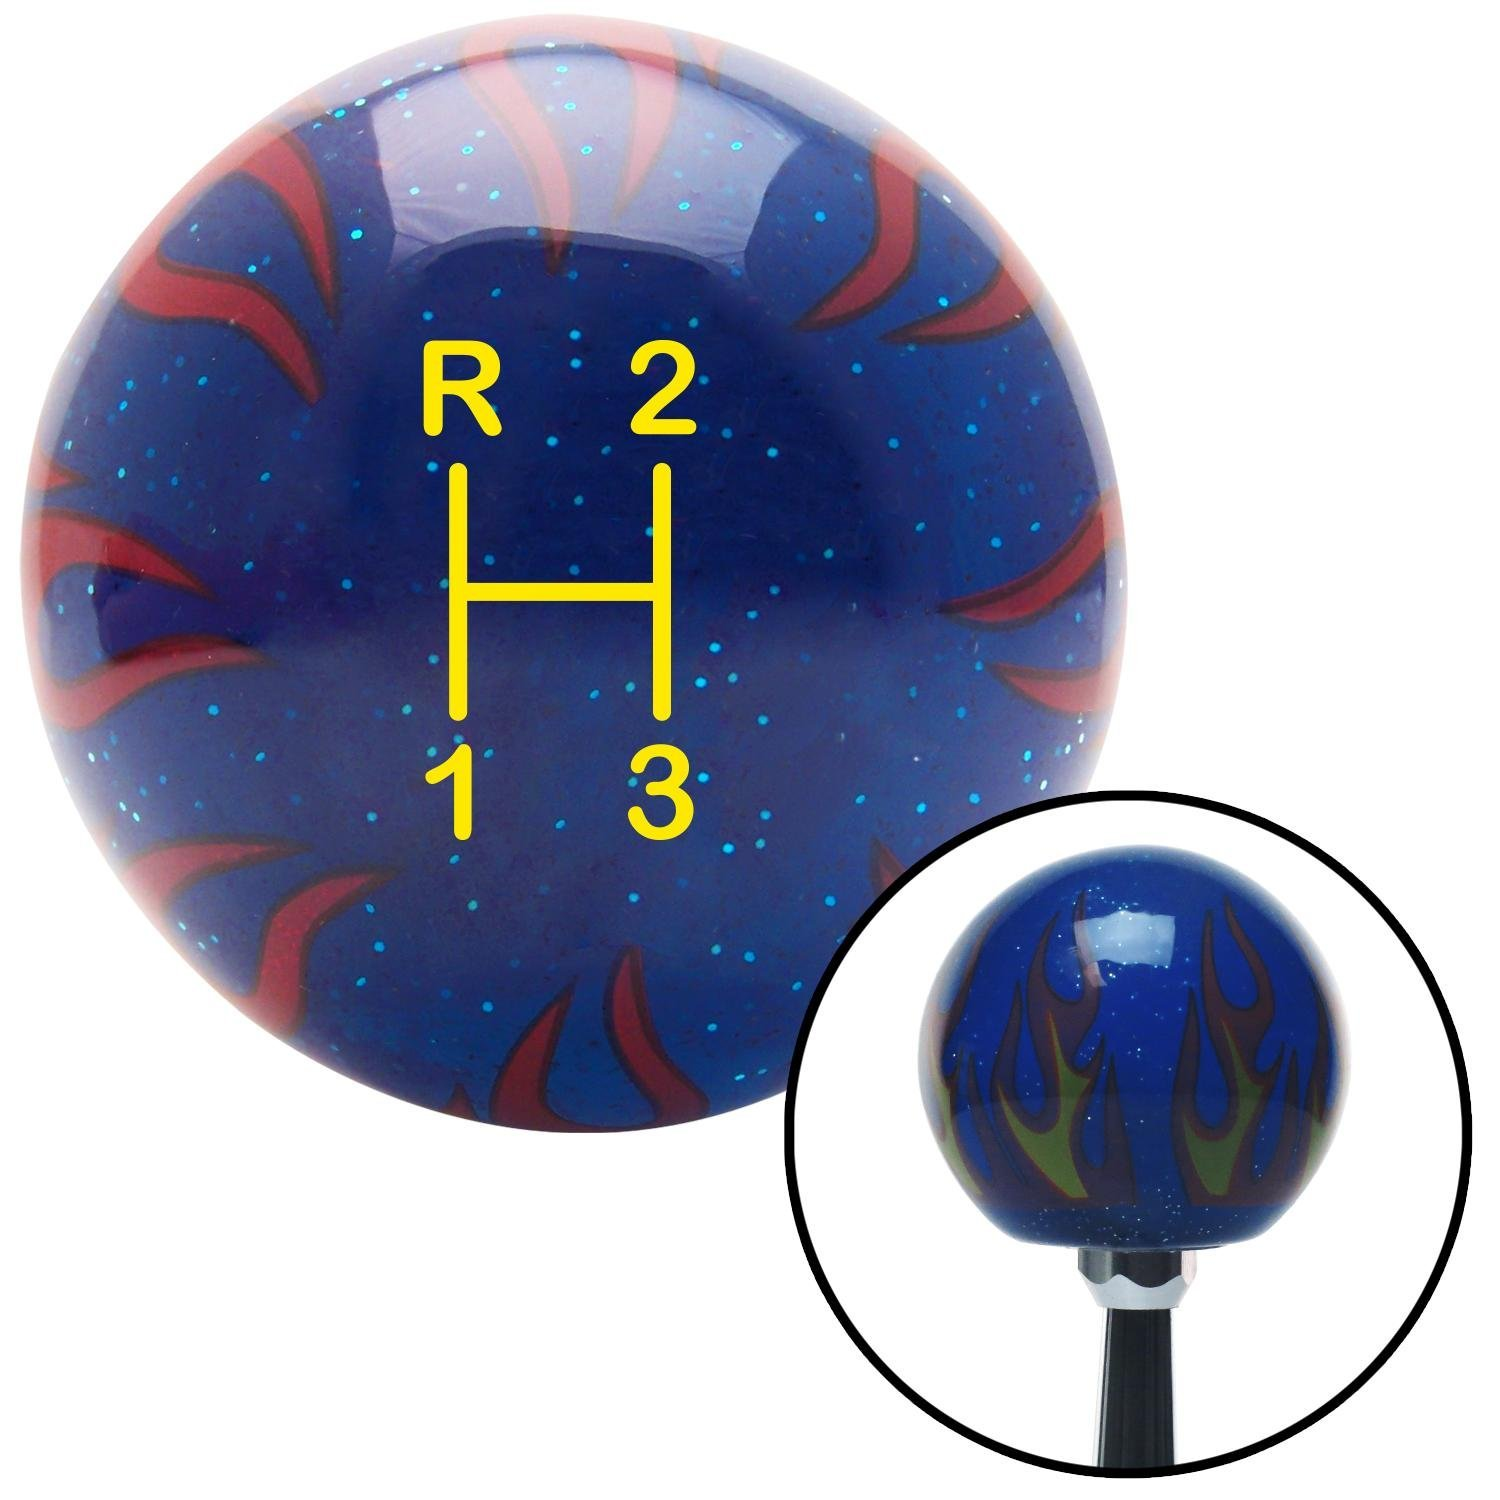 American Shifter 250948 Blue Flame Metal Flake Shift Knob with M16 x 1.5 Insert Yellow Shift Pattern 11n